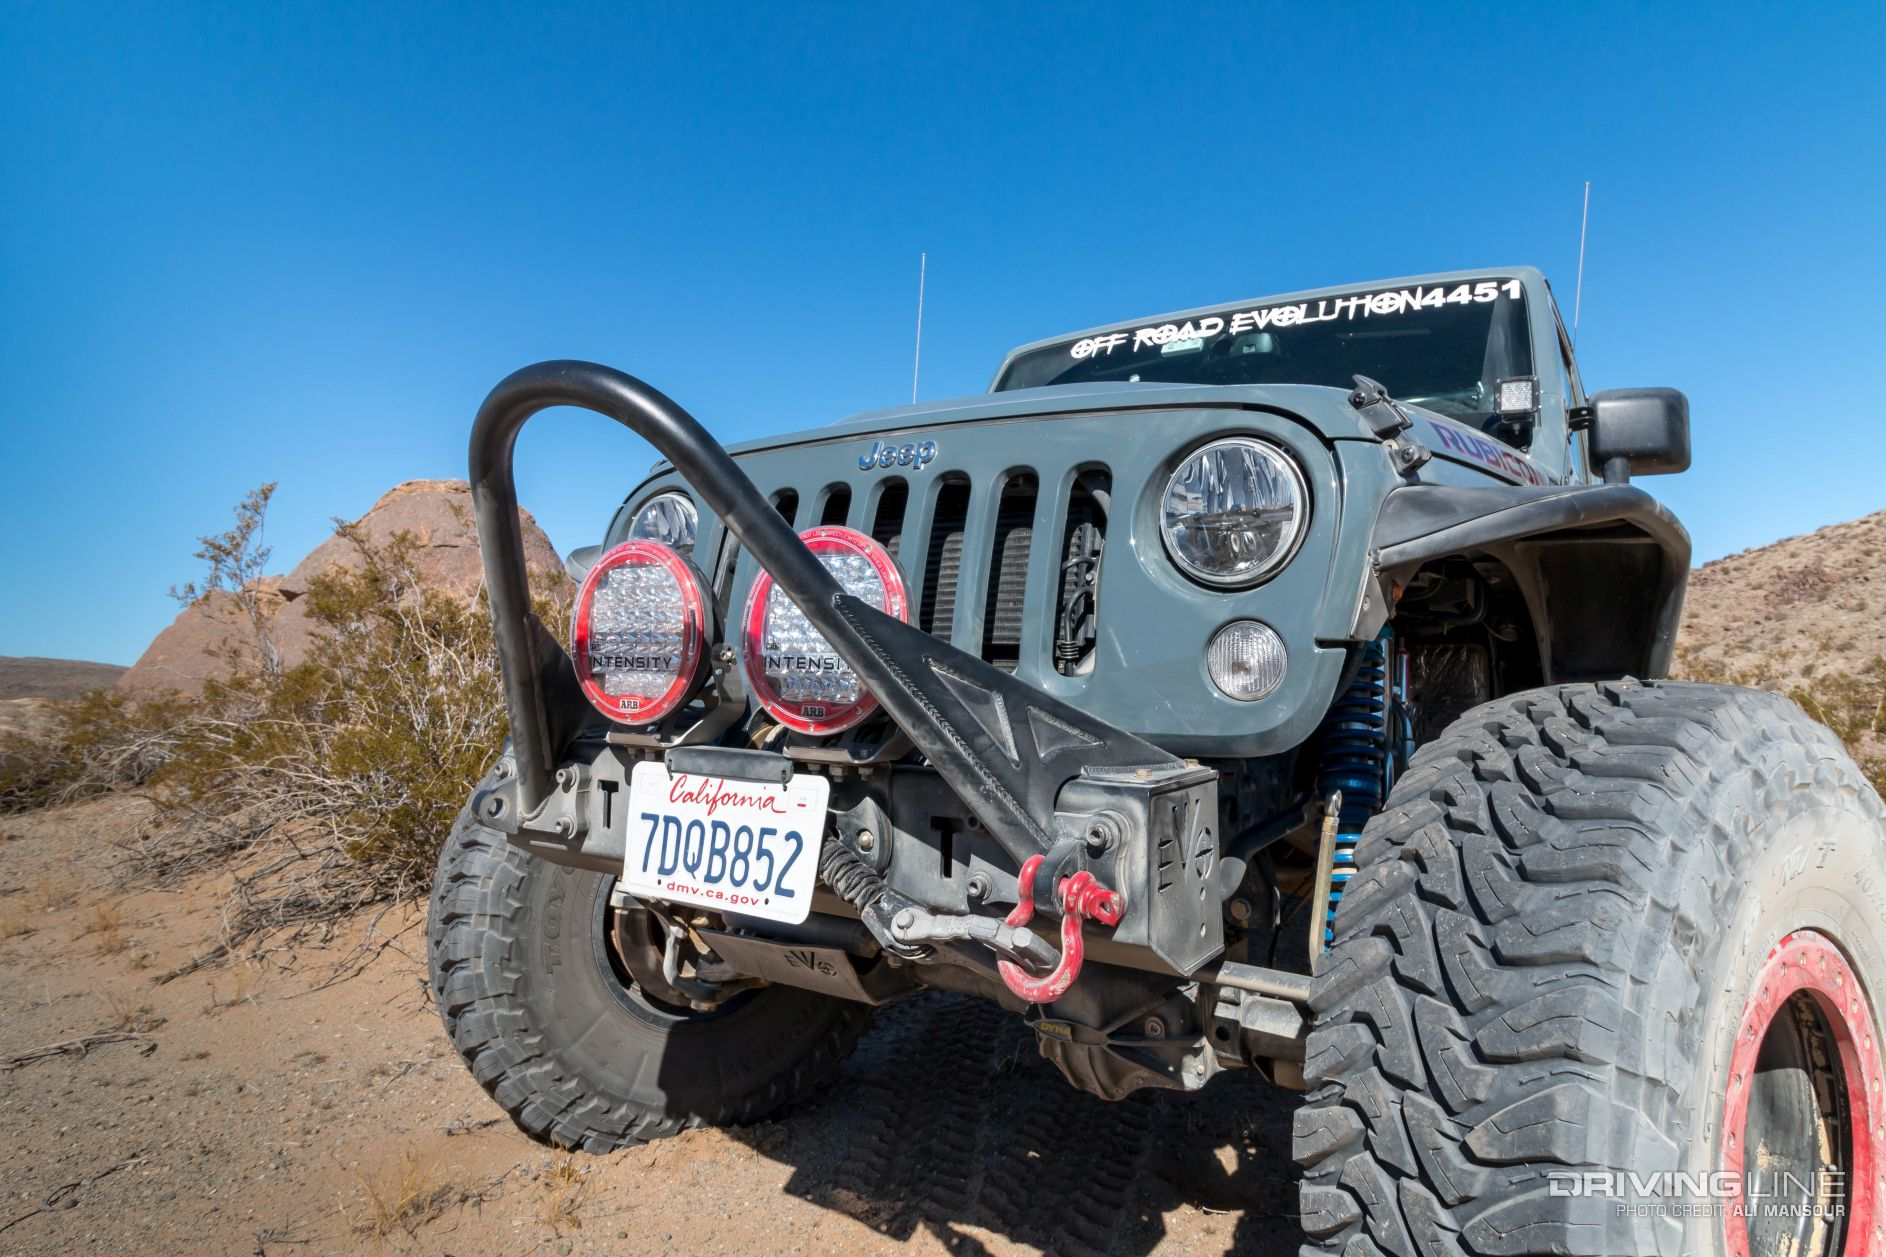 Dual-Purpose JK With Travel To Spare | DrivingLine